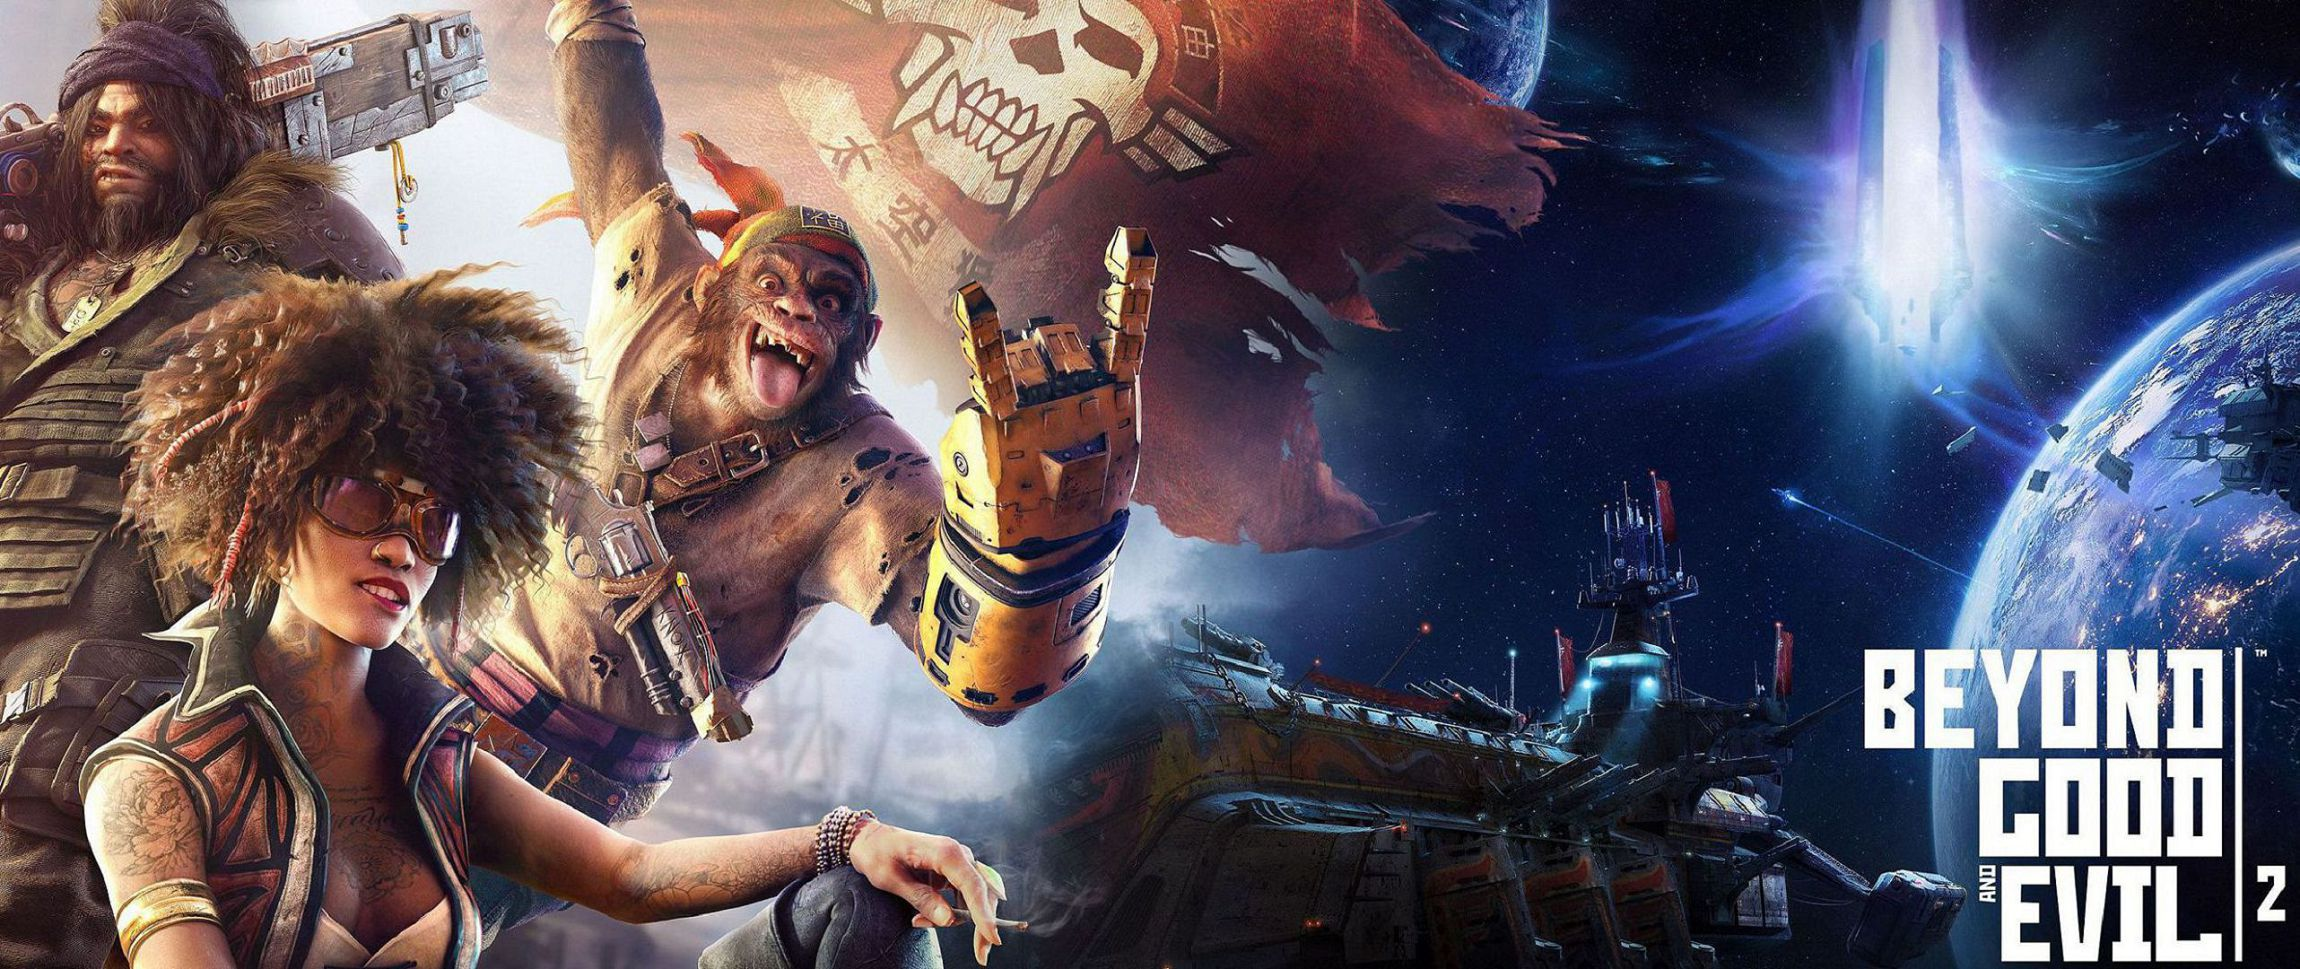 Beyond Good Evil 2 Wallpapers